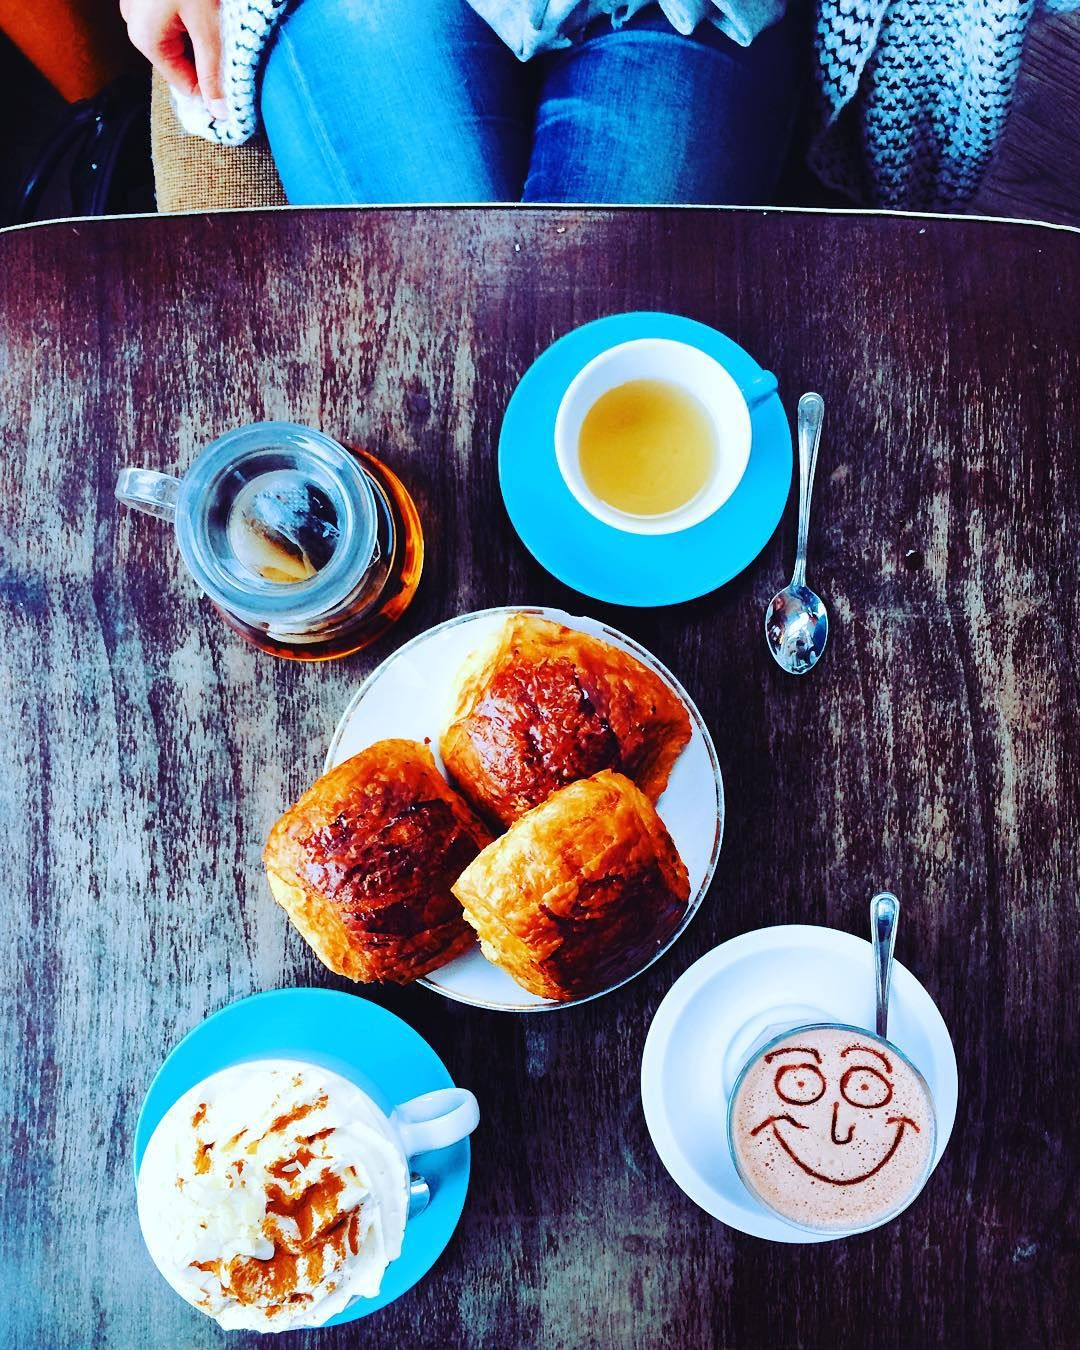 We want breakfast like this every day  #Coffee #cafe #coffeetime #coffeeaddict #coffeelover #coffeelovers